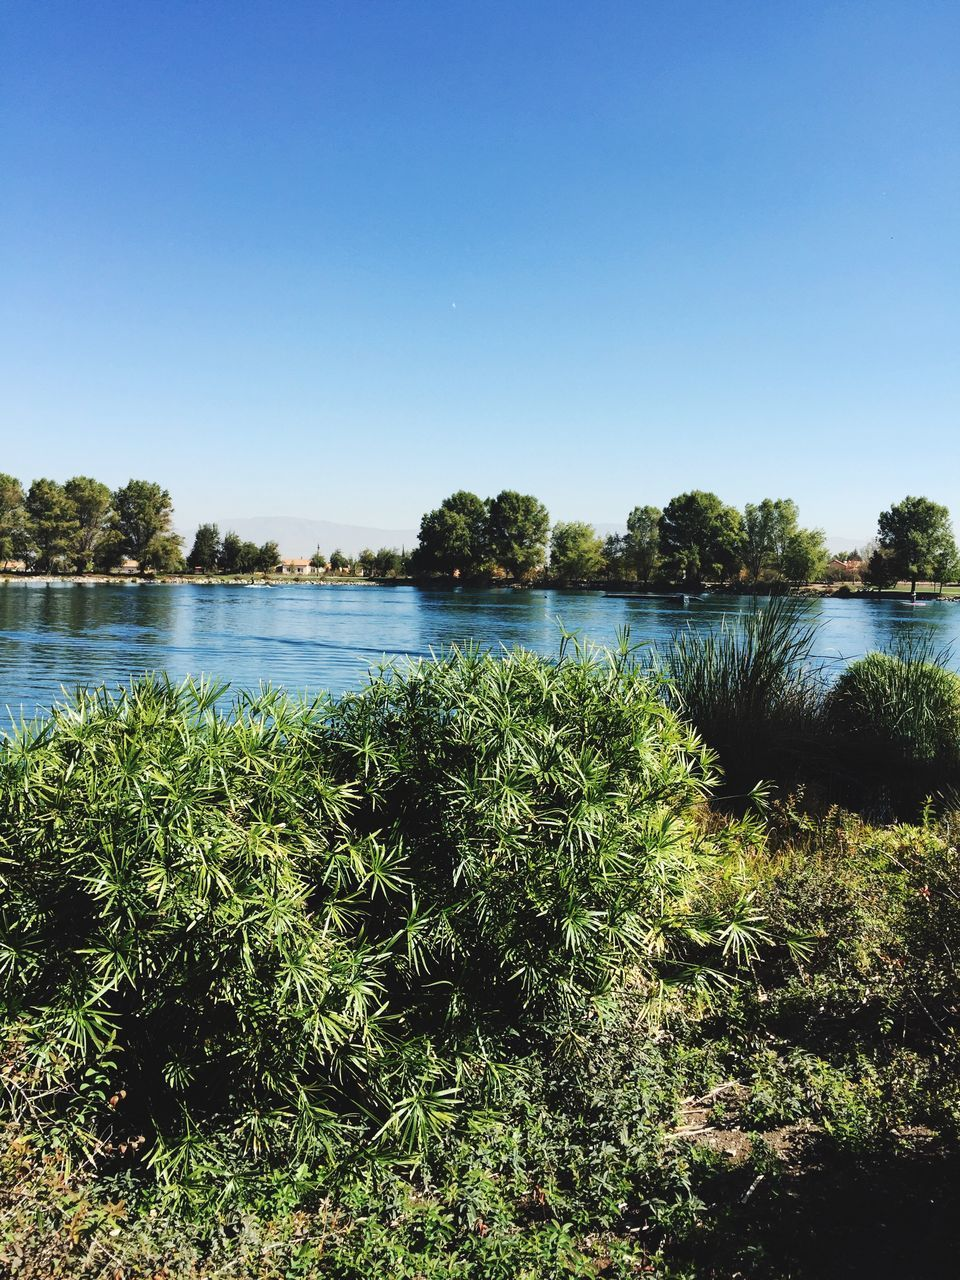 nature, plant, water, scenics, beauty in nature, lake, tranquil scene, tree, growth, clear sky, outdoors, no people, tranquility, day, green color, landscape, sky, grass